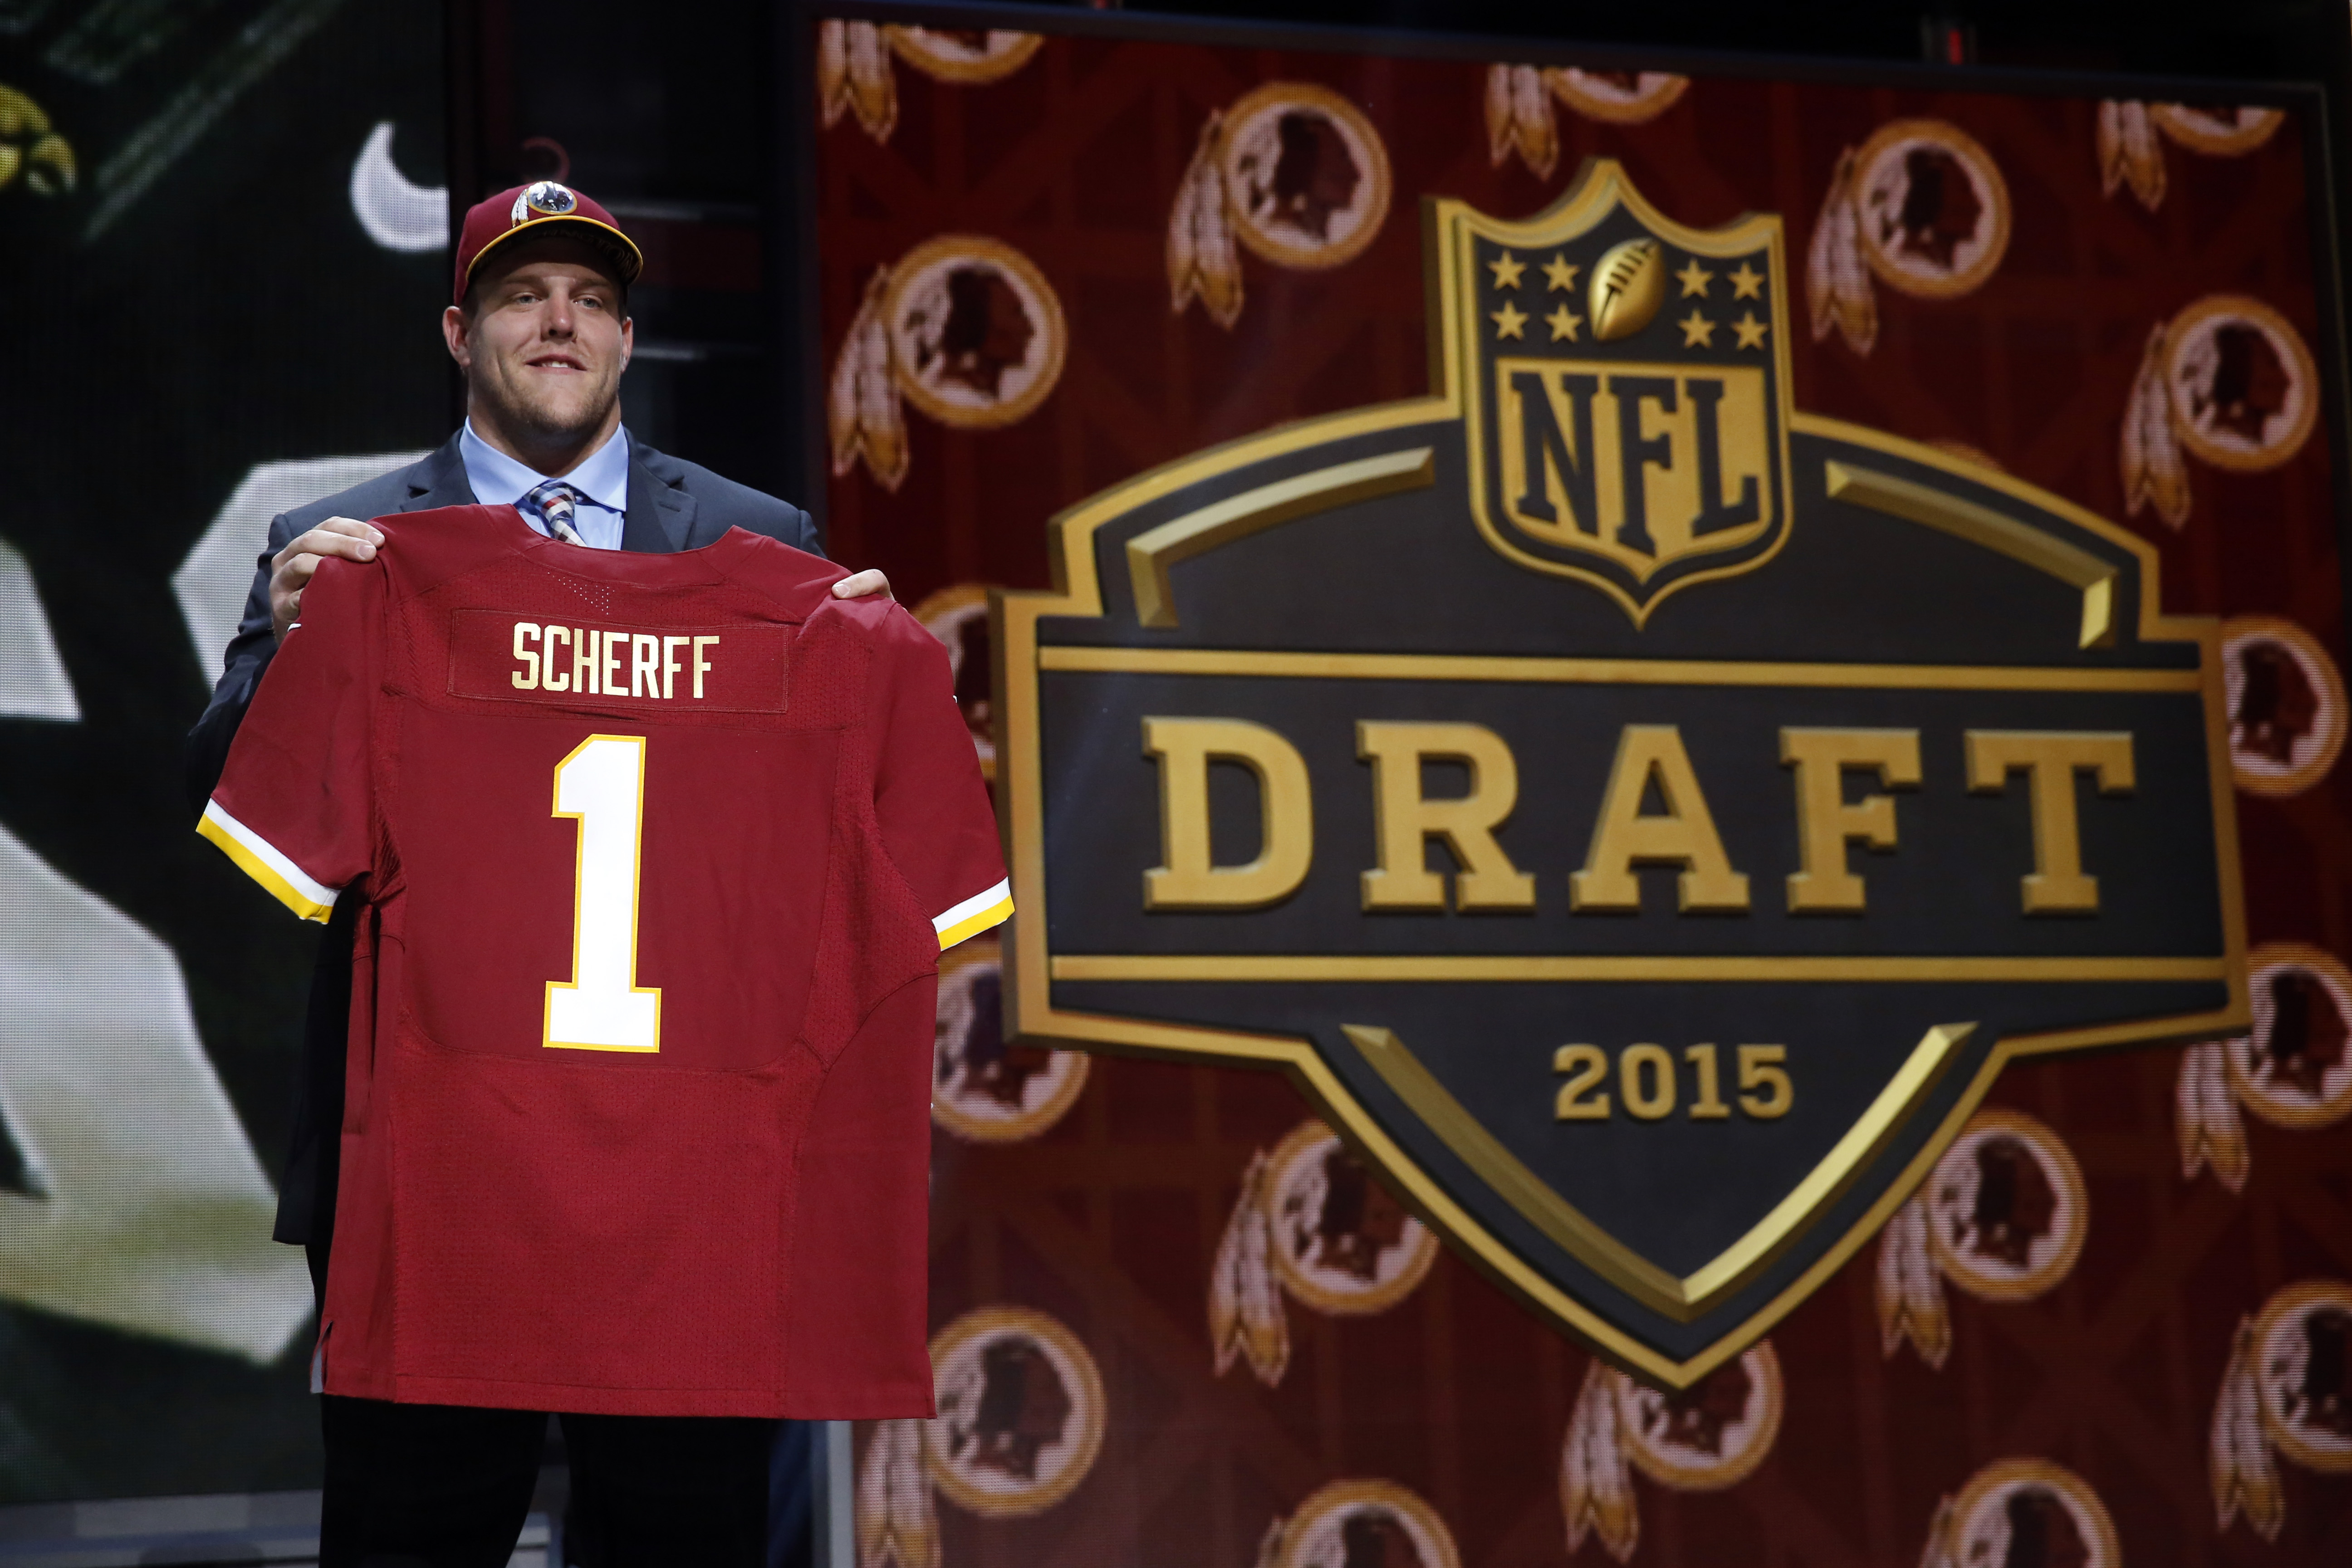 Iowa offensive lineman Brandon Scherff poses for photos after being selected by the Washington Redskins as the fifth pick in the first round of the 2015 NFL Draft,  Thursday, April 30, 2015, in Chicago. (AP Photo/Charles Rex Arbogast)